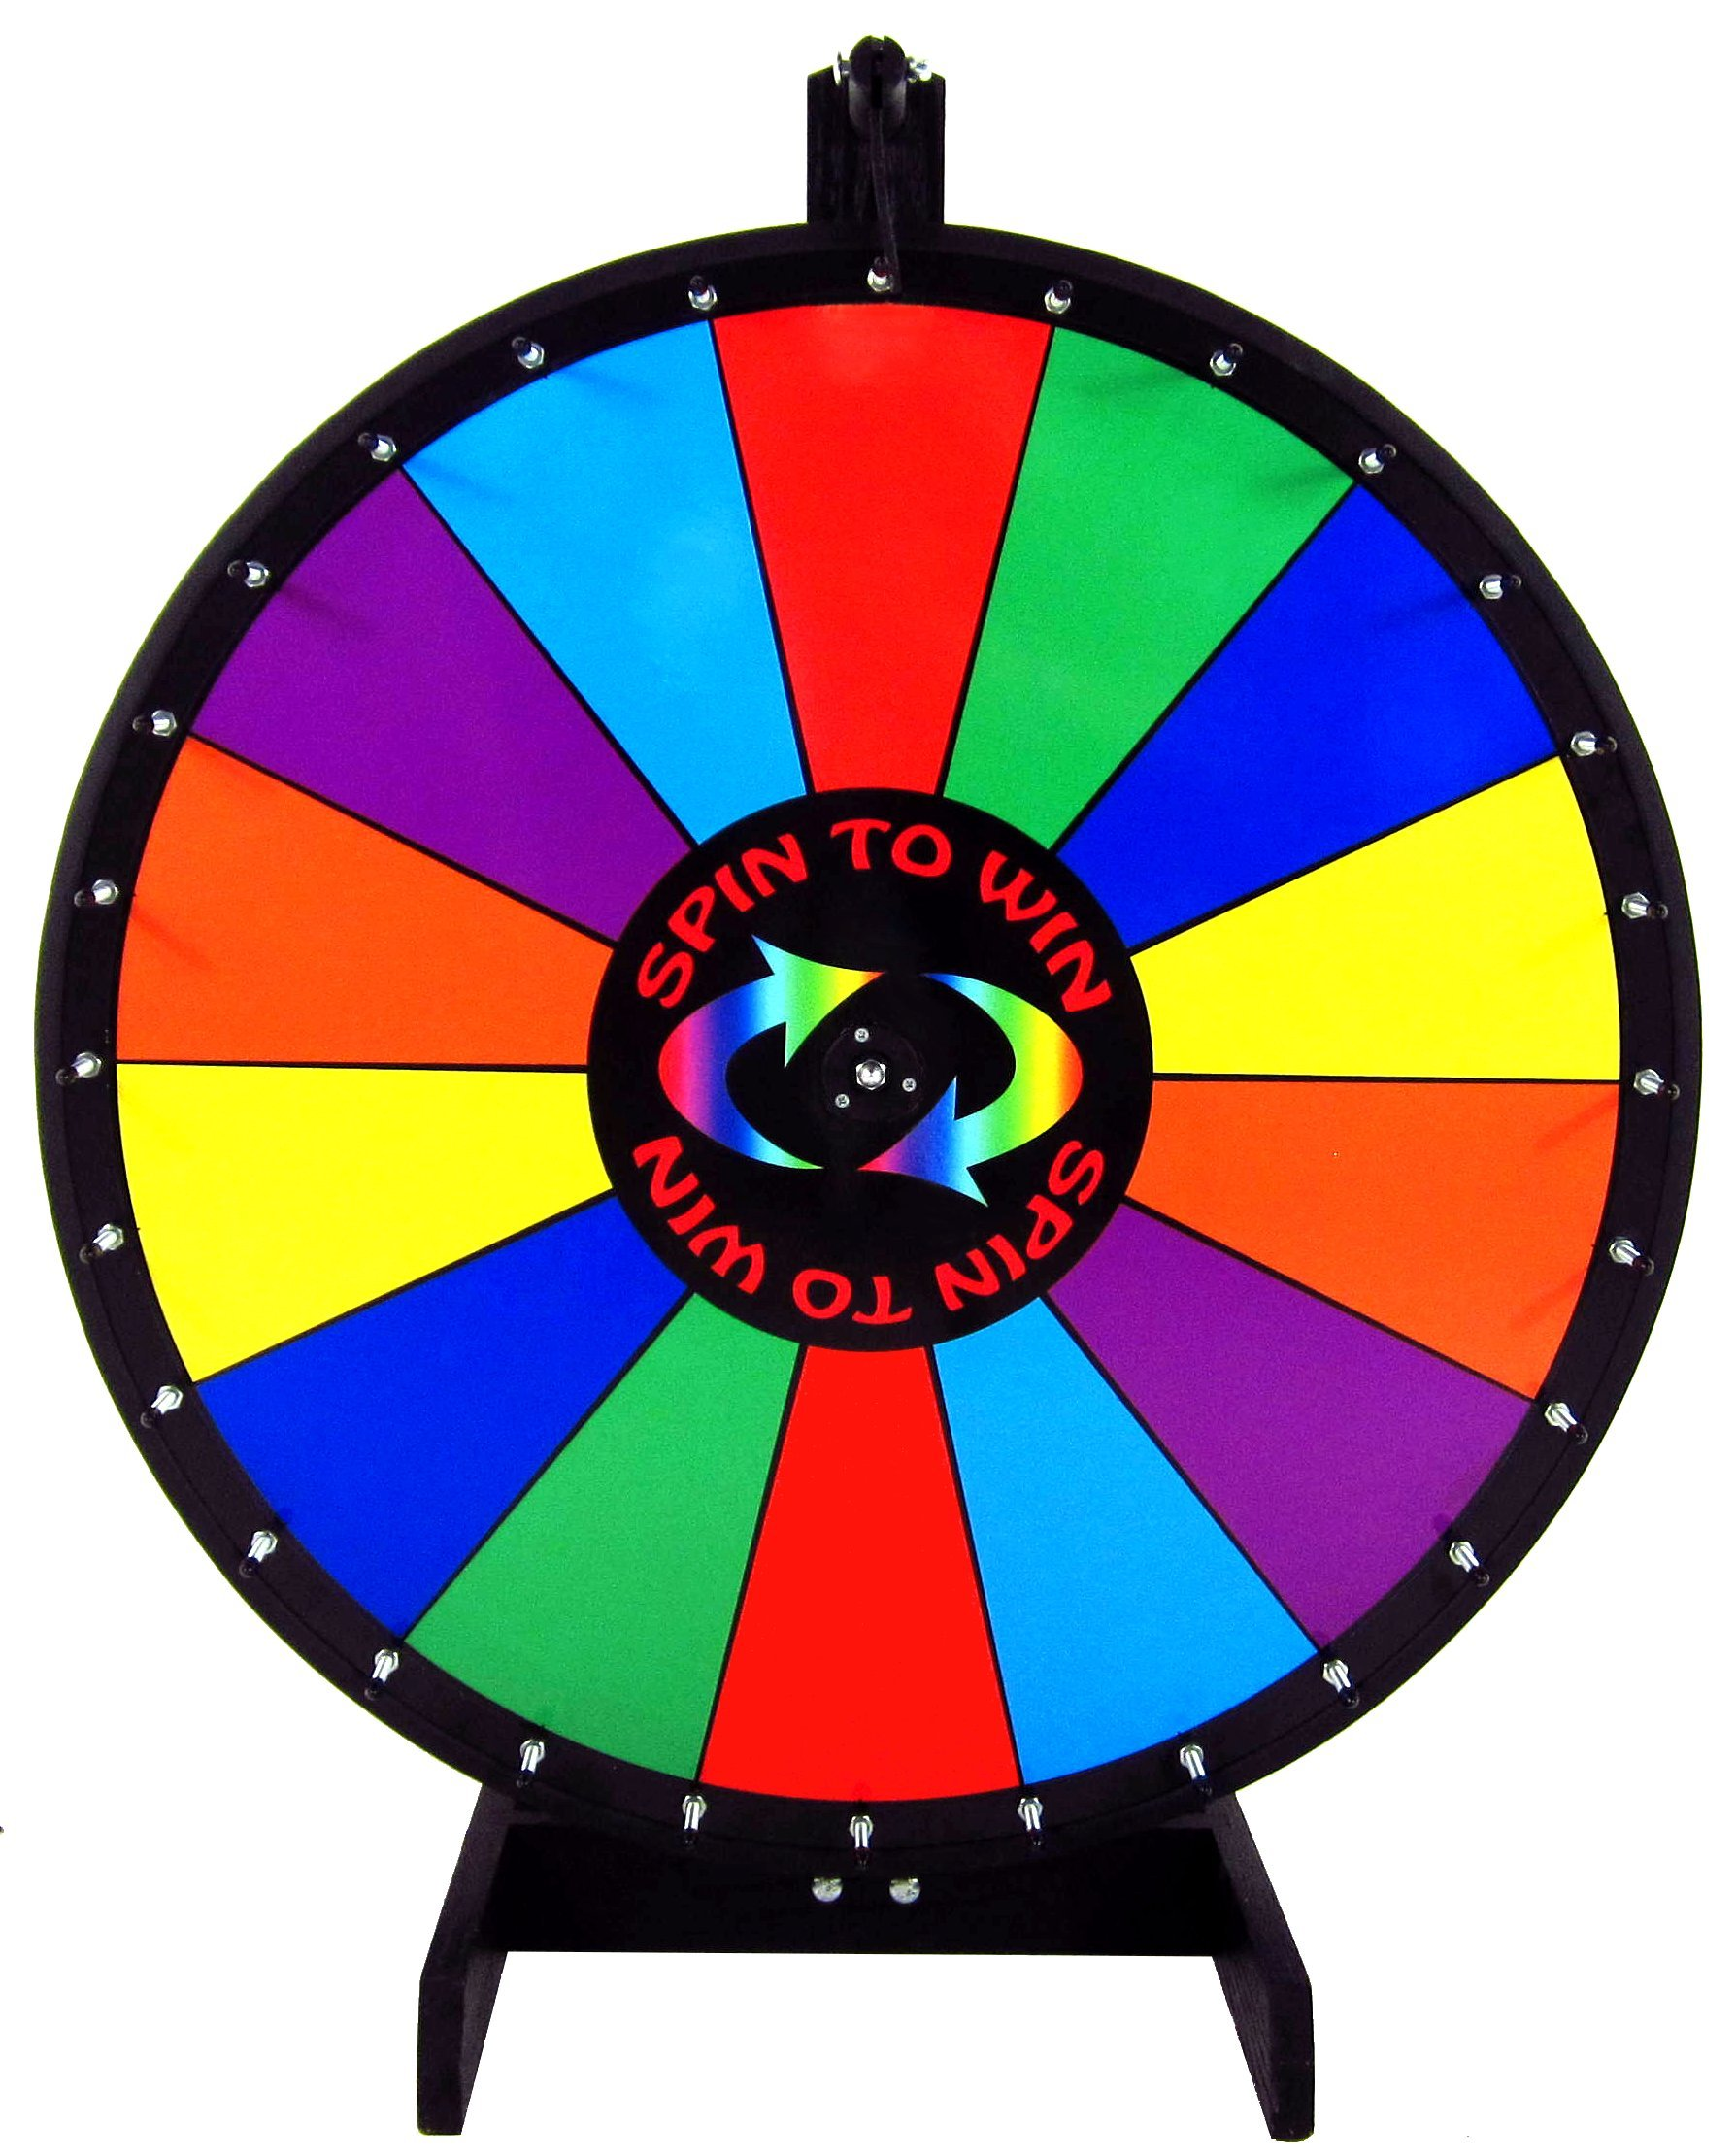 30in Quality Spin to Win Dry Erase Prize Wheel